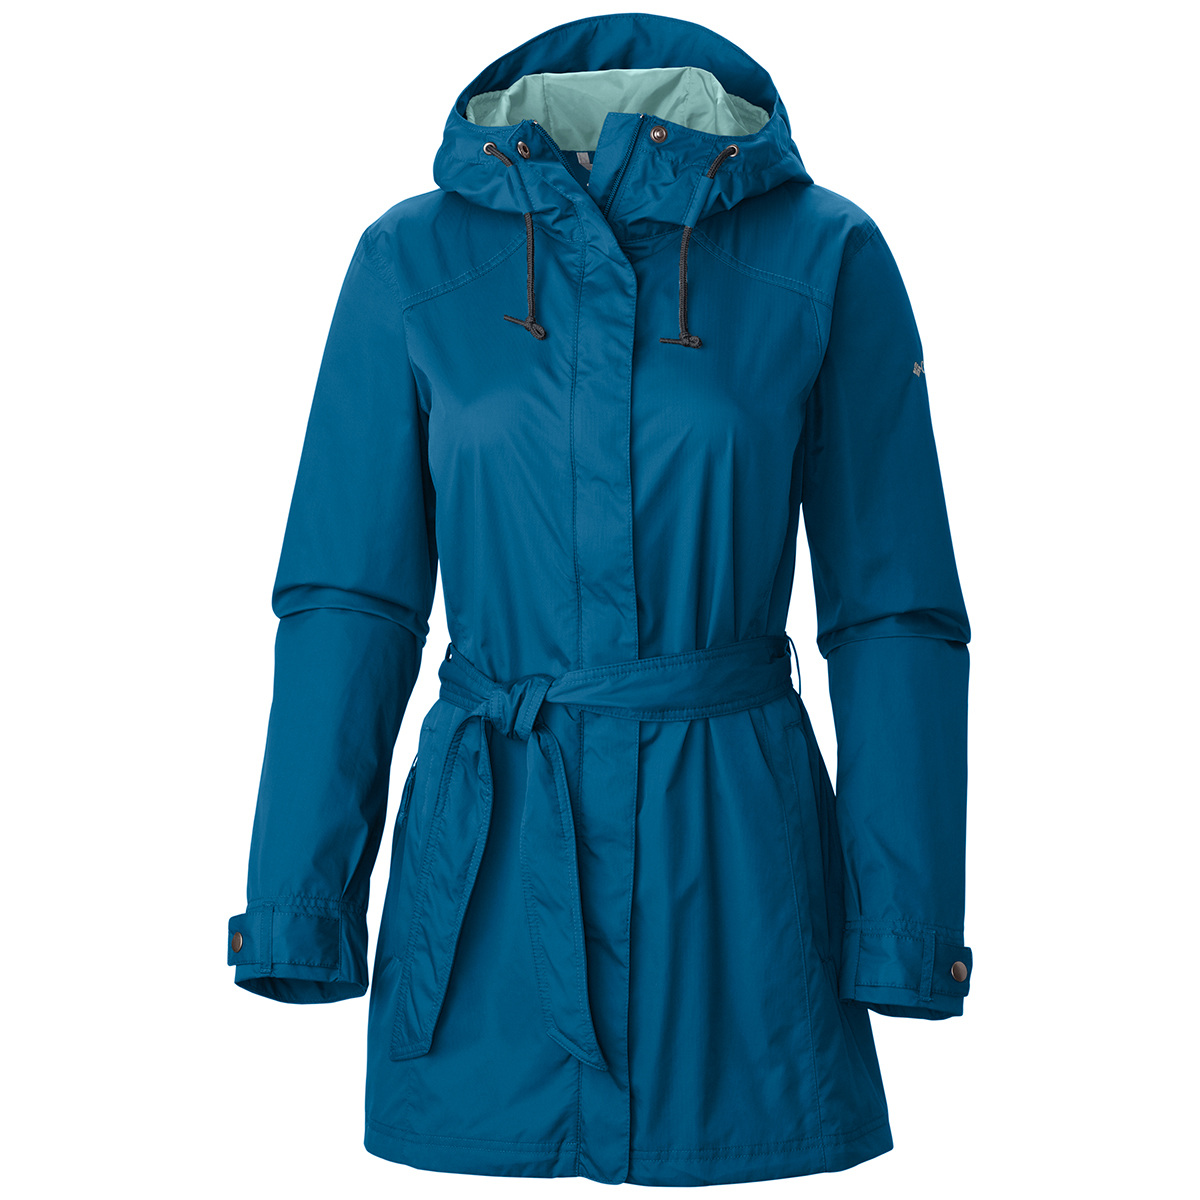 Columbia Women's Pardon My Trench Rain Jacket - Blue, M